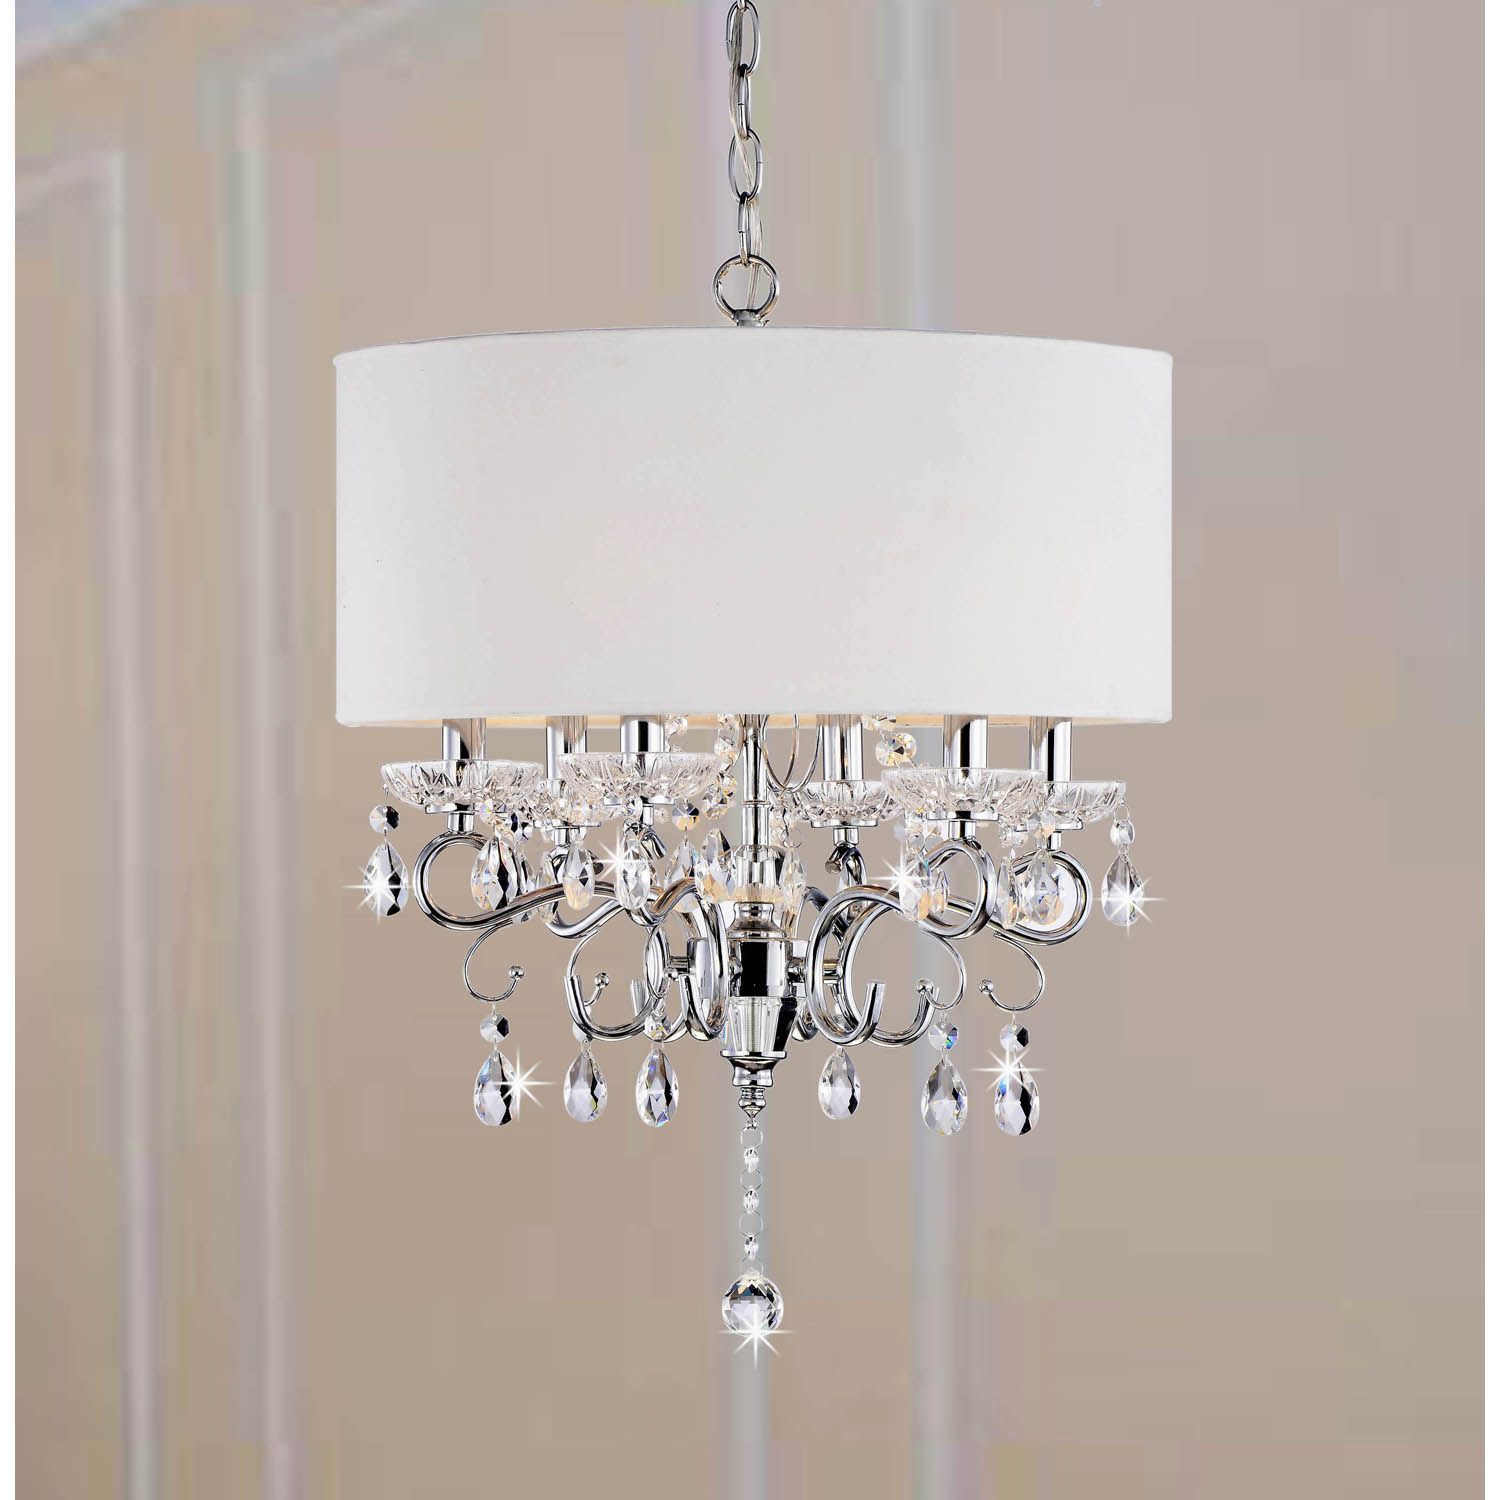 Allured Crystal ChandelierSolid White Shade